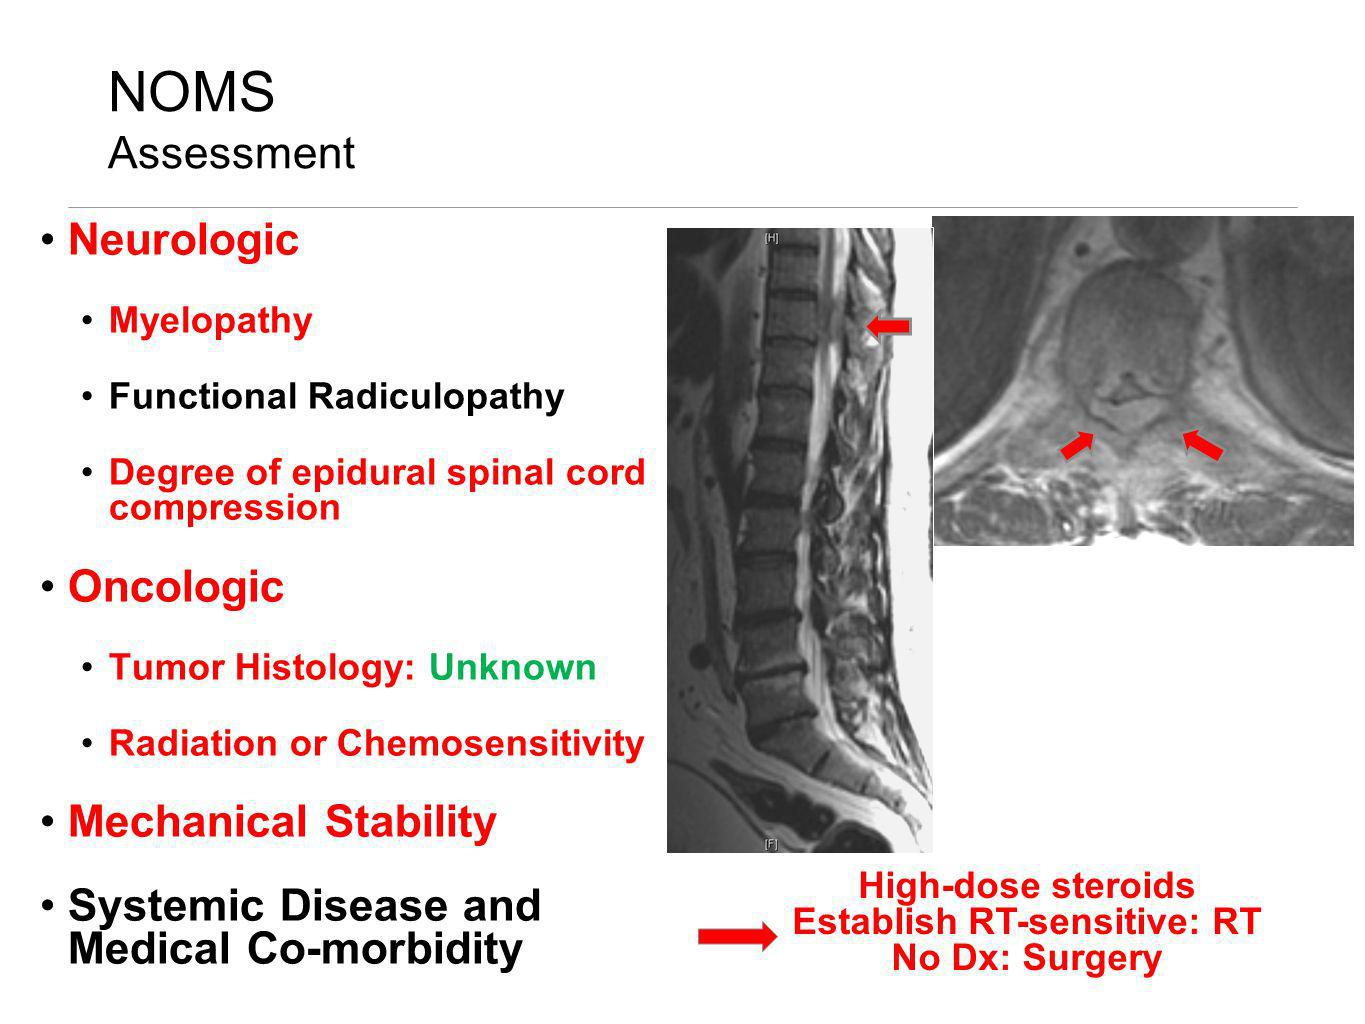 NOMS Assessment Neurologic Myelopathy Functional Radiculopathy Degree of epidural spinal cord compression Oncologic Tumor Histology: Unknown Radiation